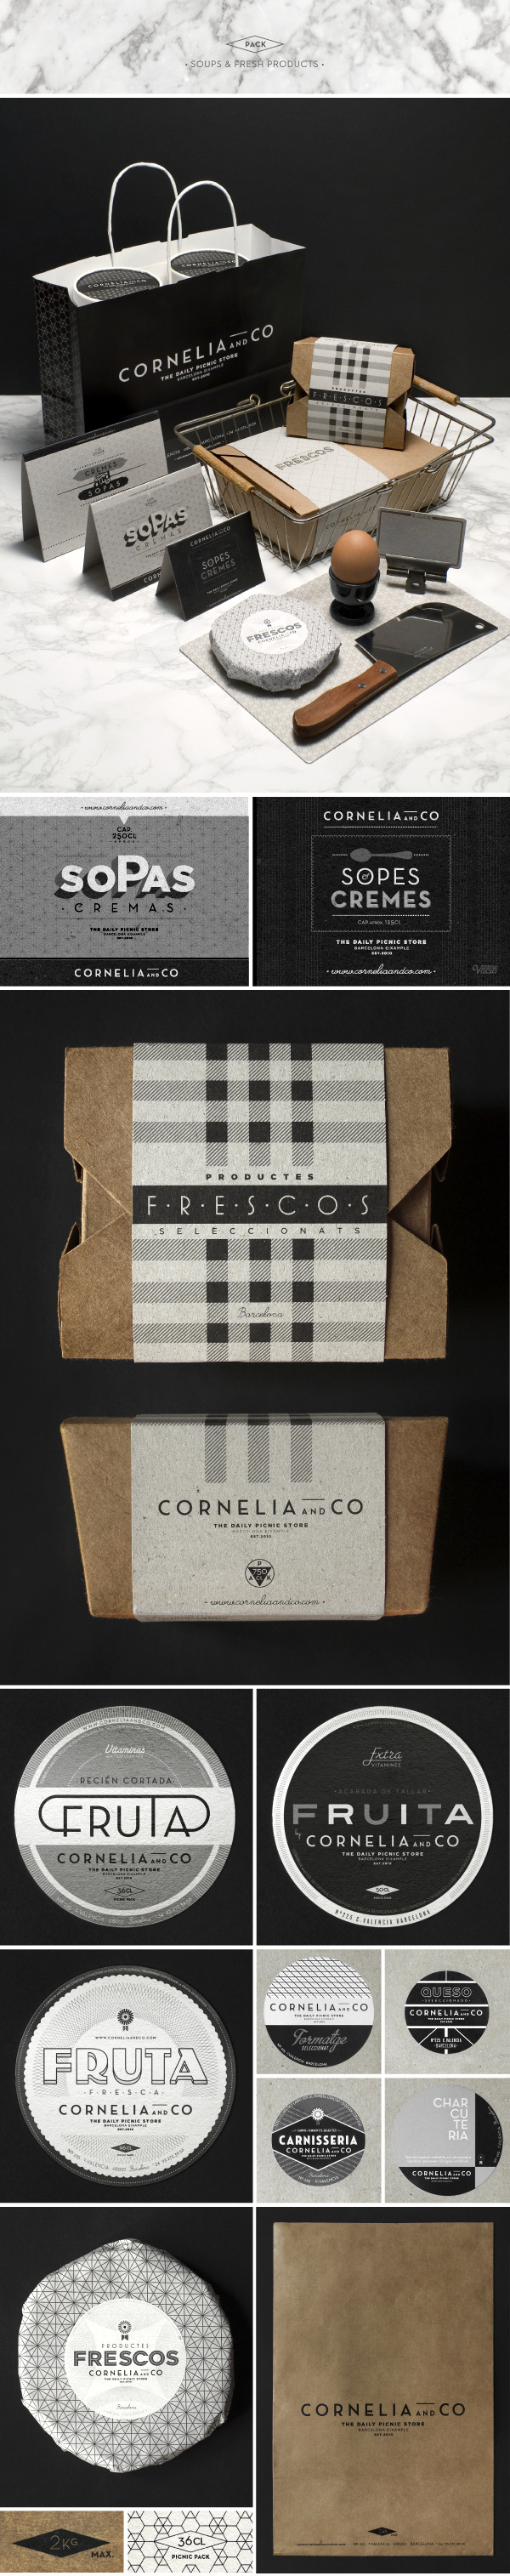 CORNELIA and CO [ Brand identity & Packaging ] #packaging #food